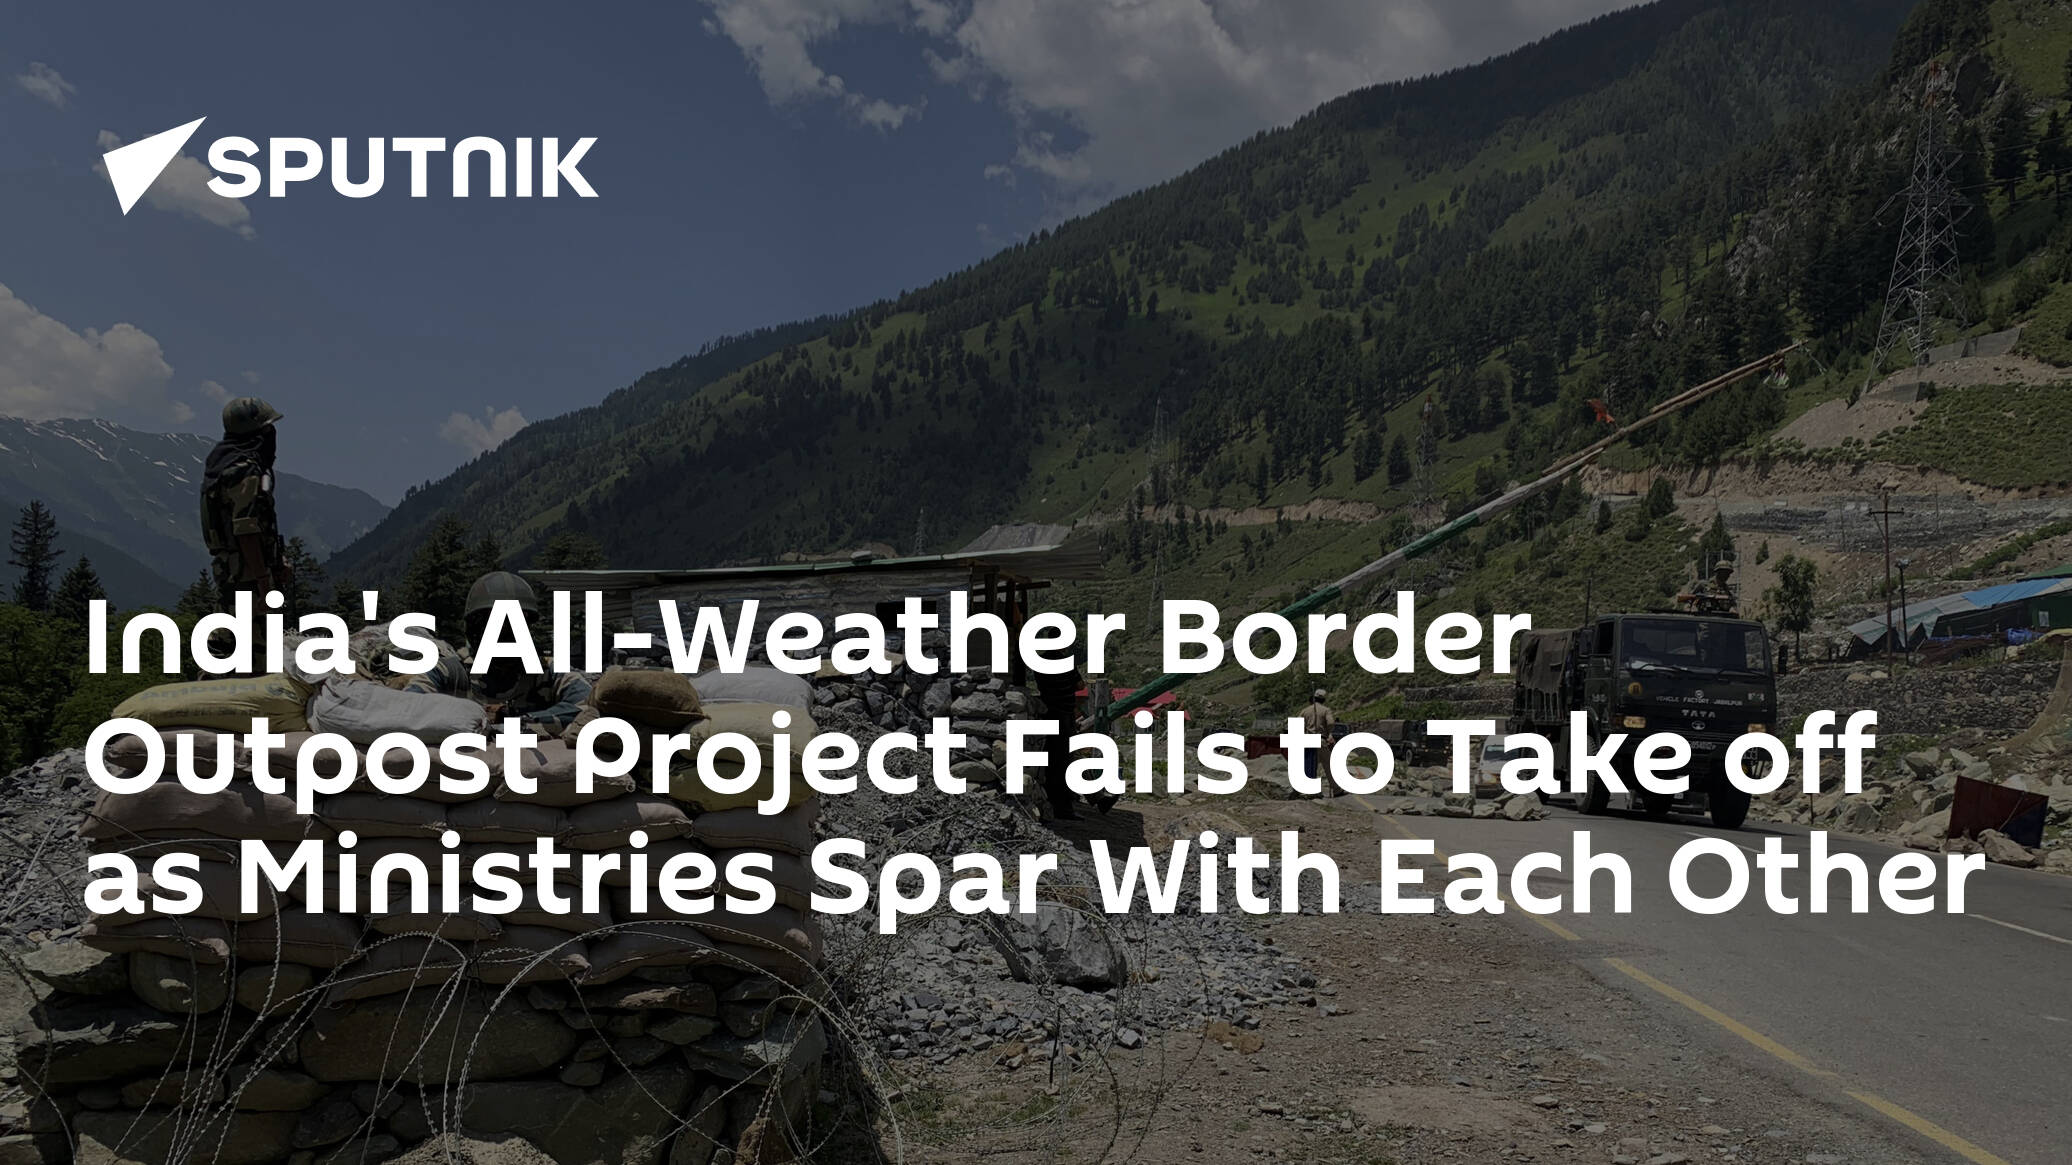 India's All-Weather Border Outpost Project Fails to Take off as Ministries Spar With Each Other